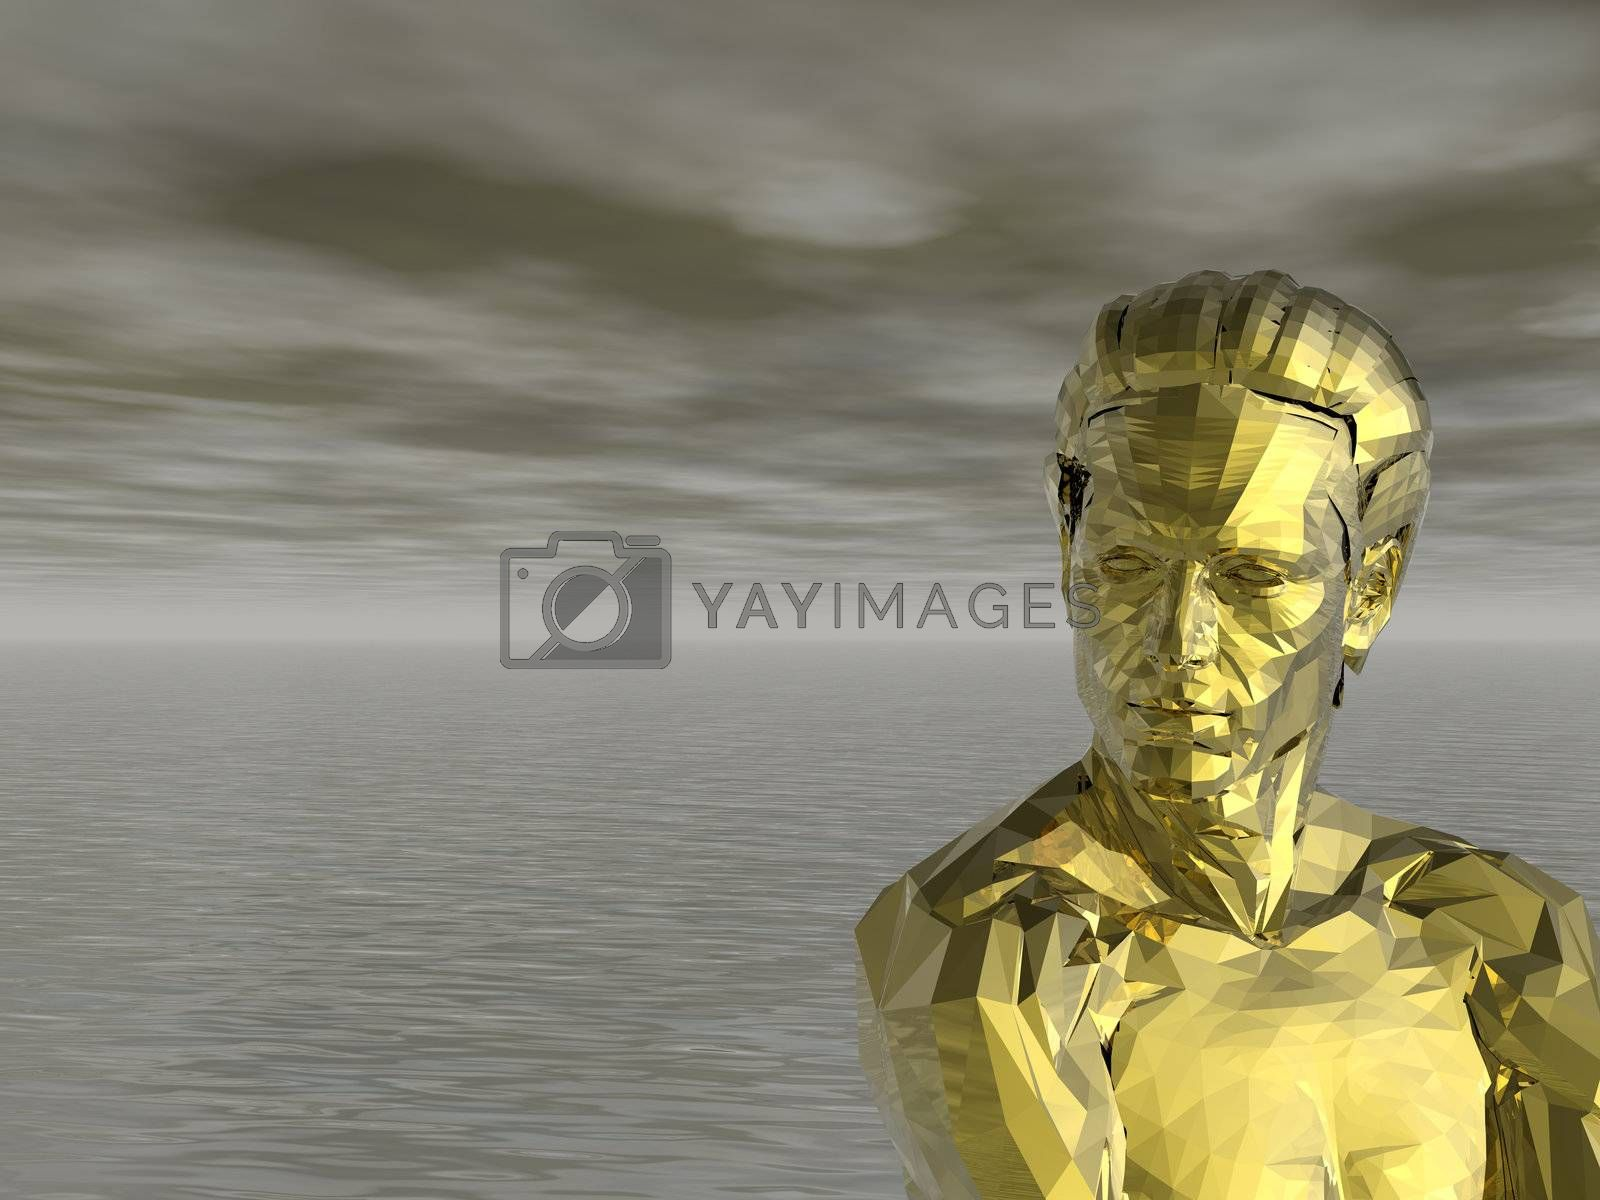 Royalty free image of golden monument by drizzd